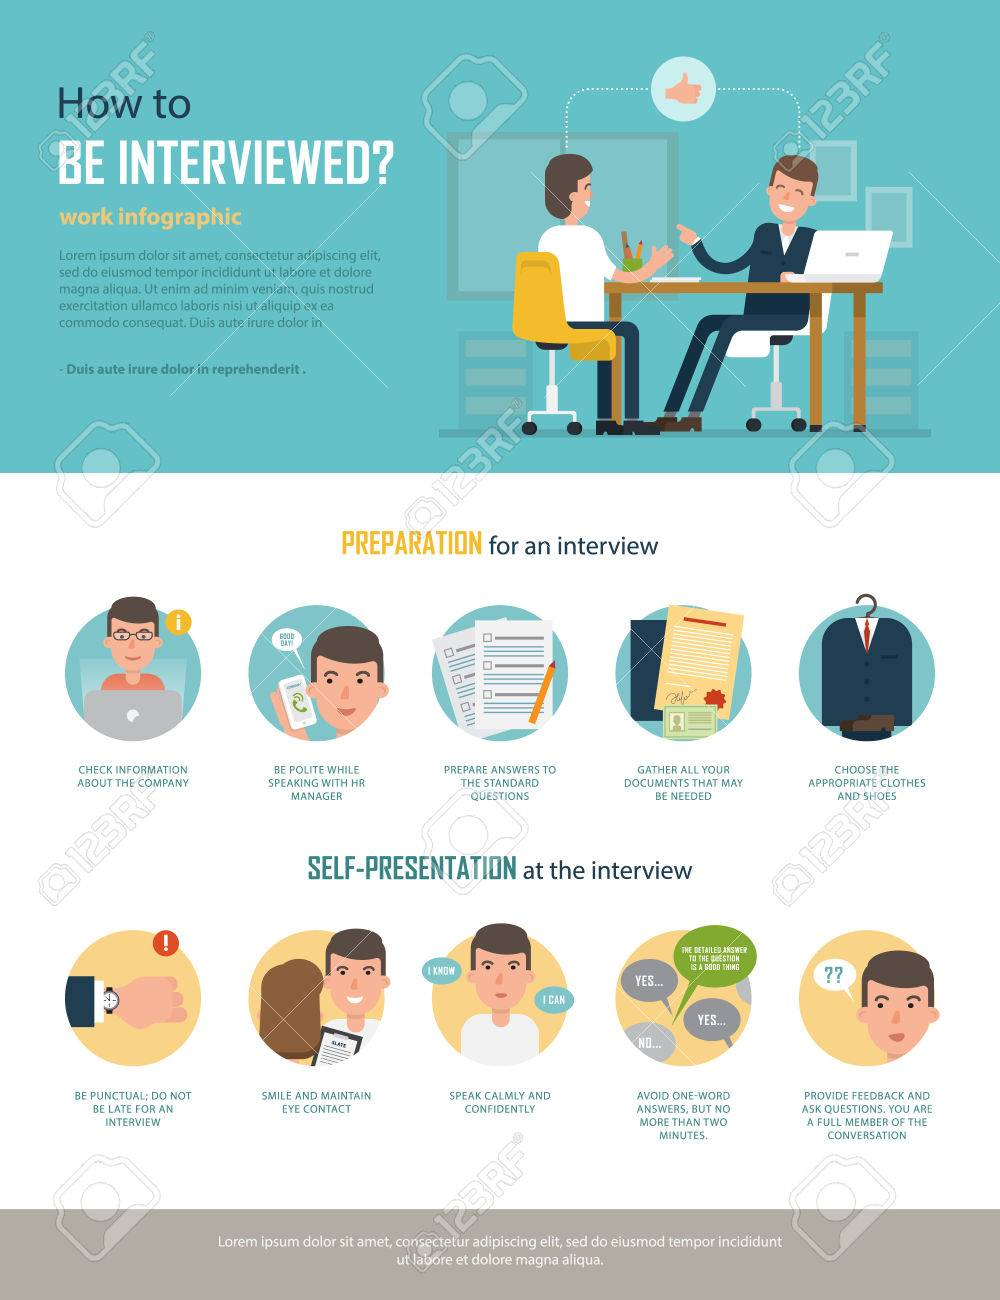 infographics how to be interviewed preparing for the interview infographics how to be interviewed preparing for the interview in the company self